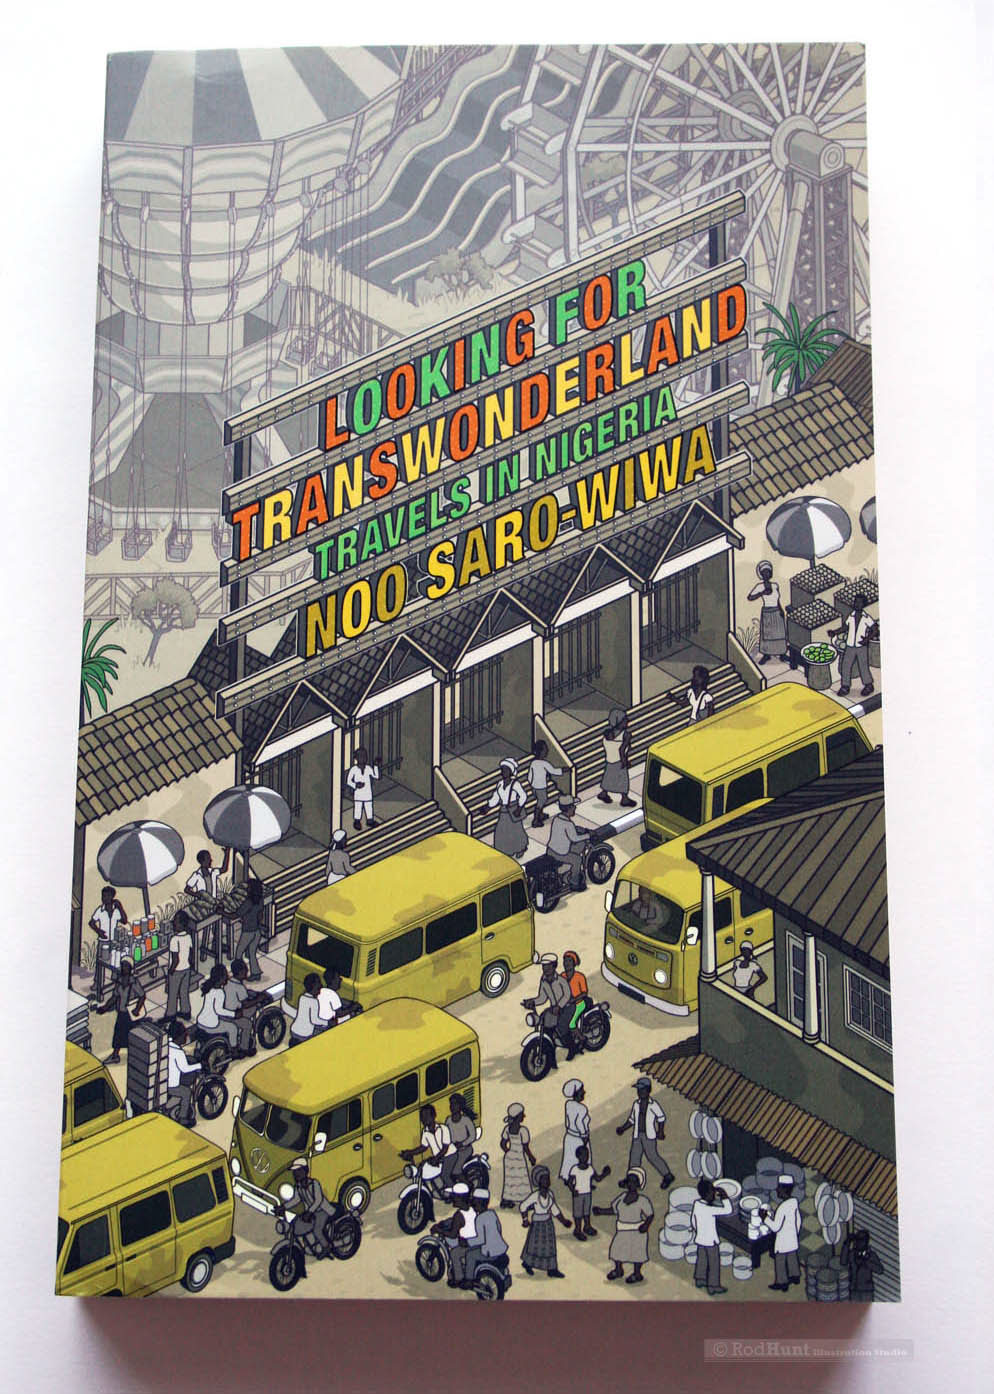 Looking For Book Cover Illustration : Looking for transwonderland book cover illustration on